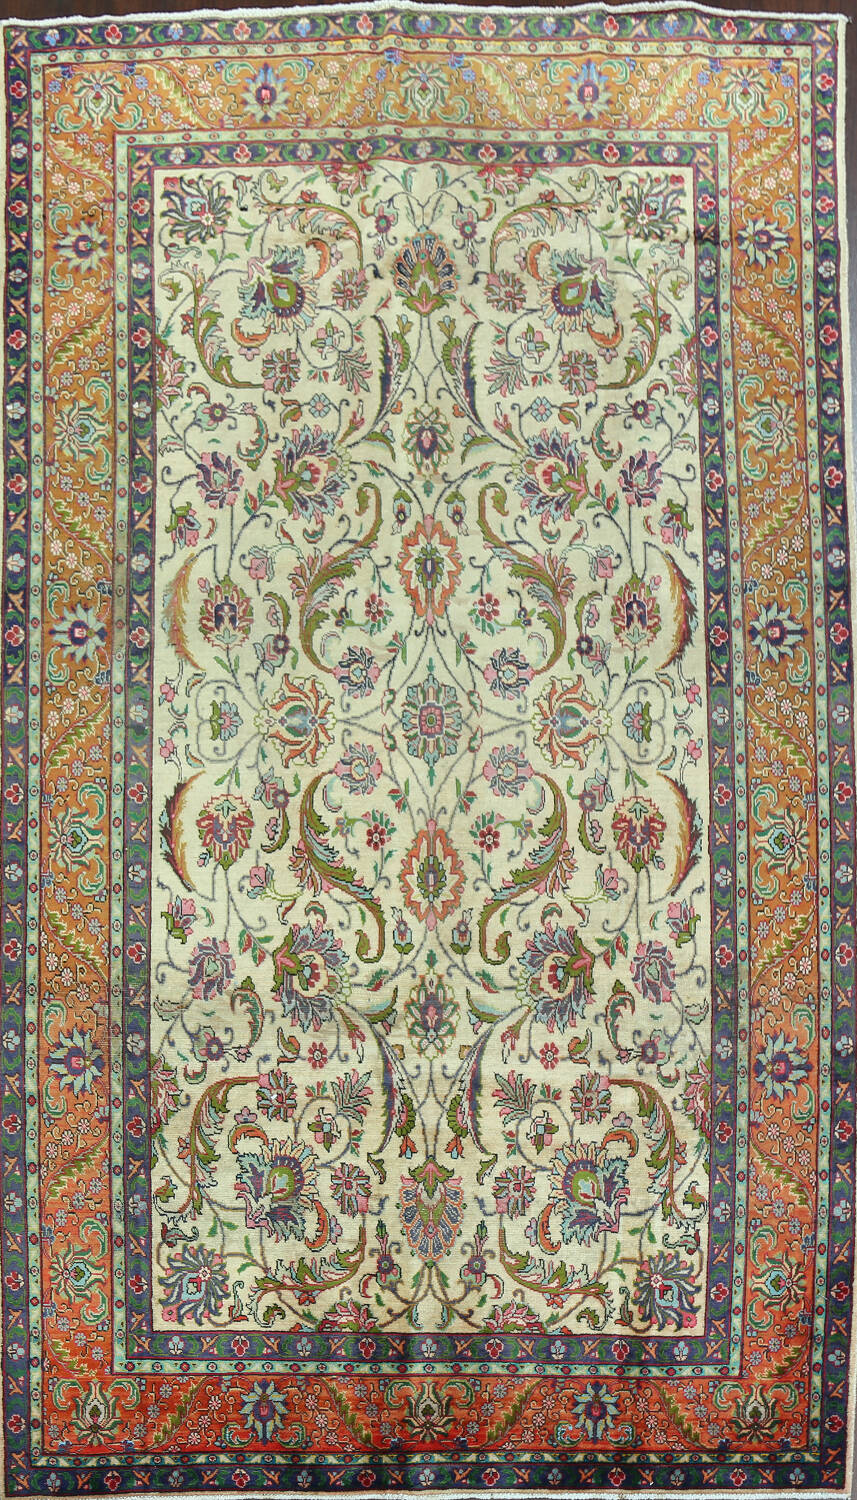 Antique All-Over Floral Tabriz Persian Area Rug 7x11 image 1